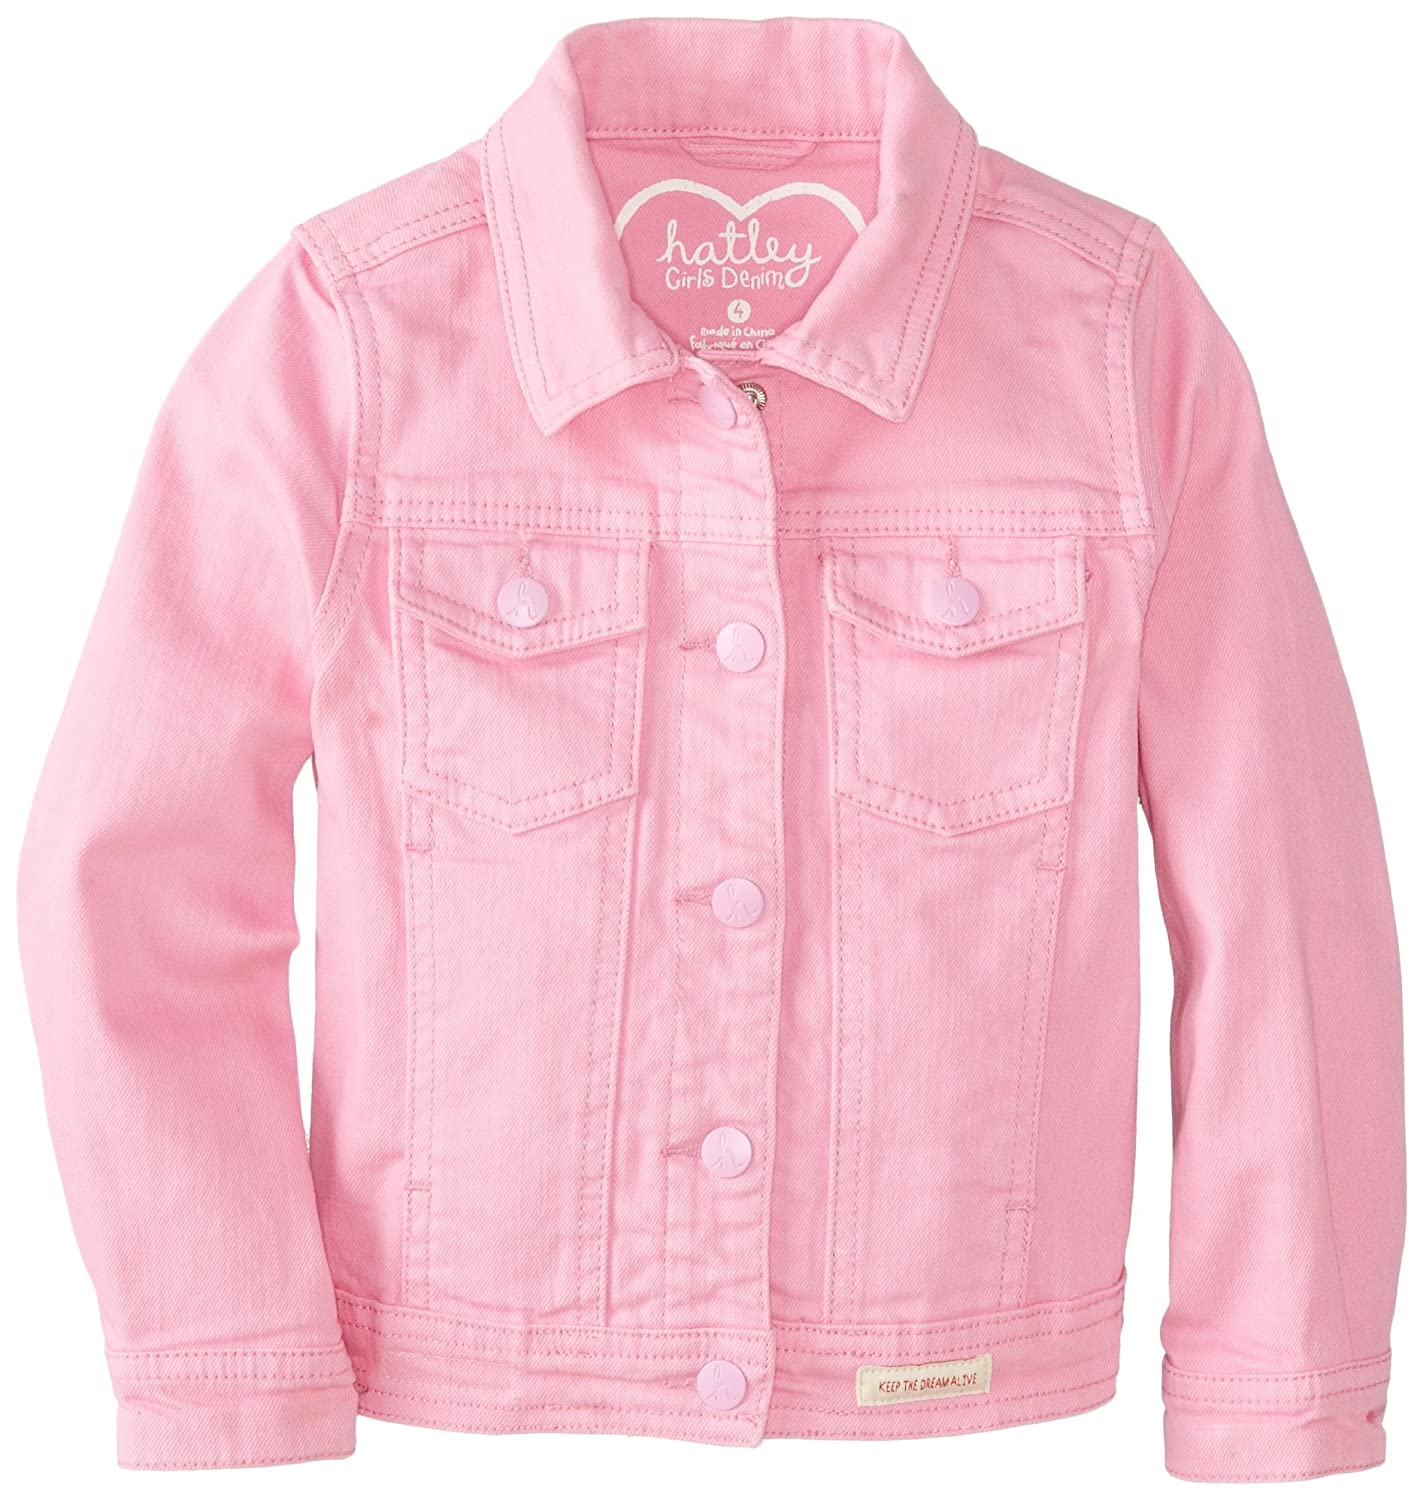 ac39556a7 Pink Jacket For Girls